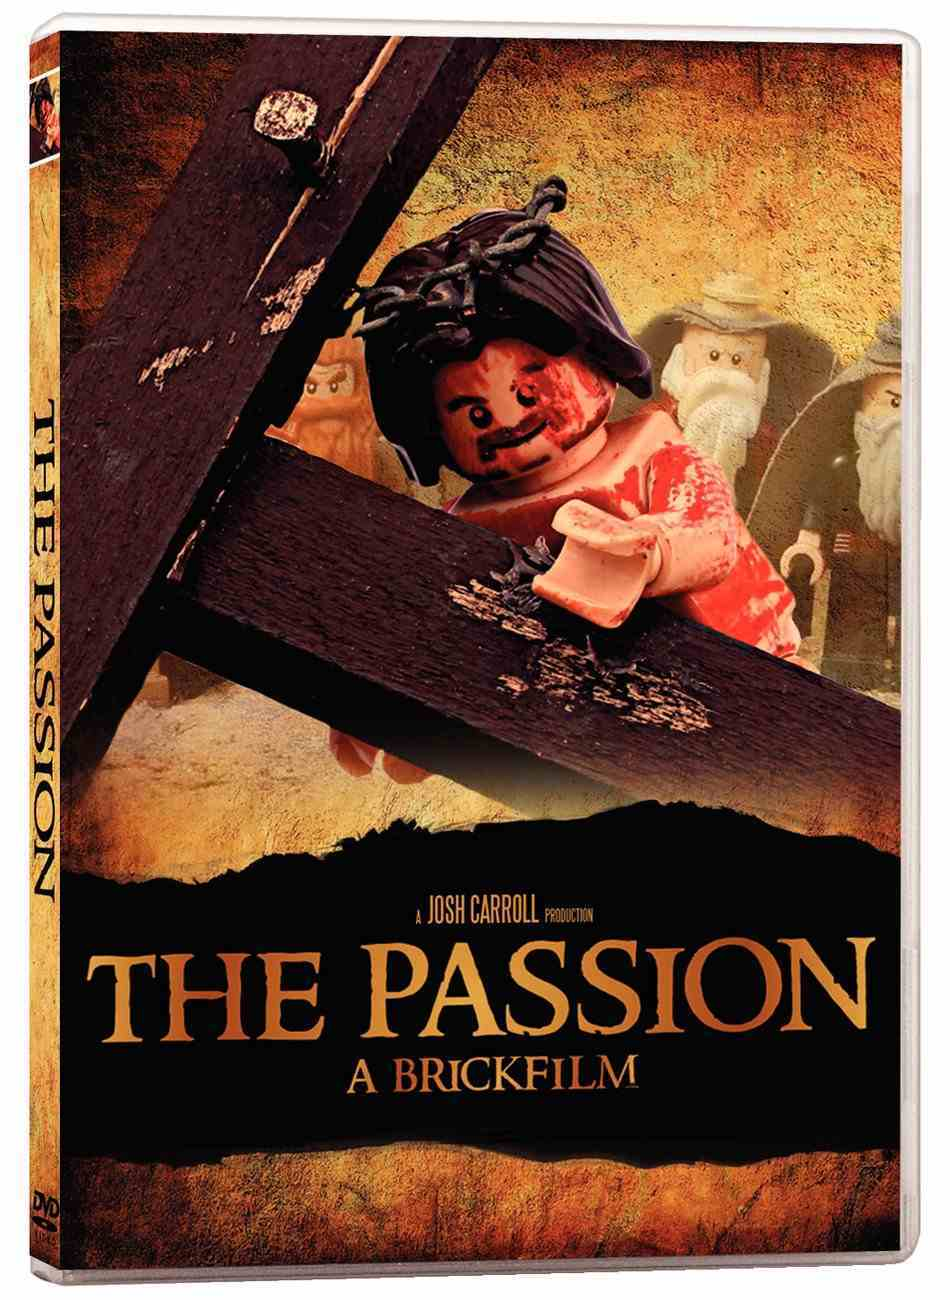 The Passion: A Brickfilm DVD